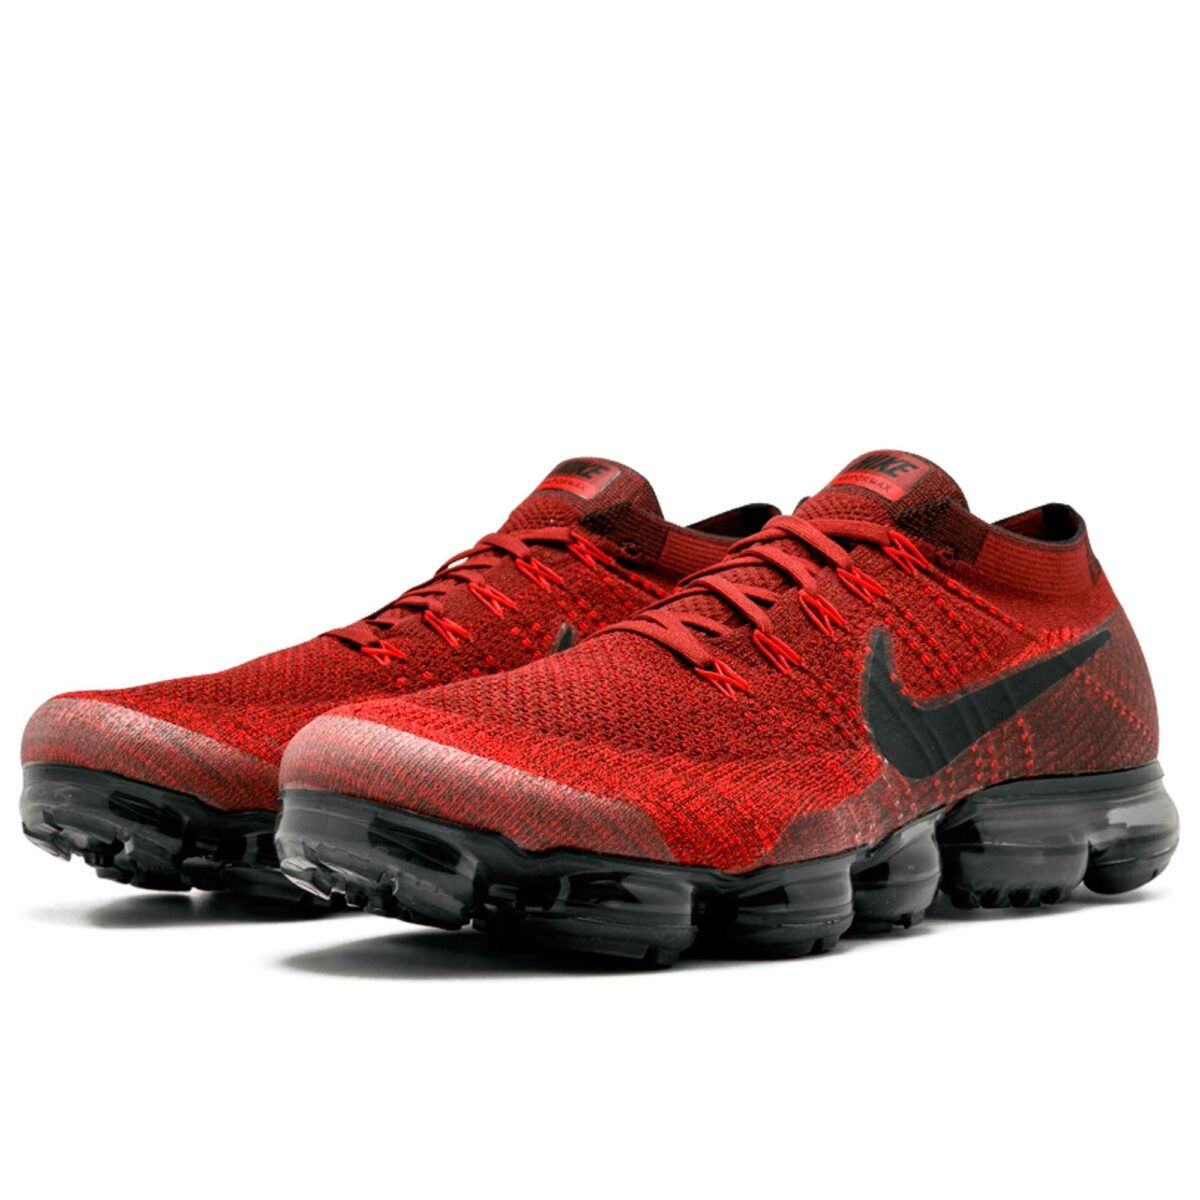 nike air vapormax flyknit dark team red black 849558_601 купить